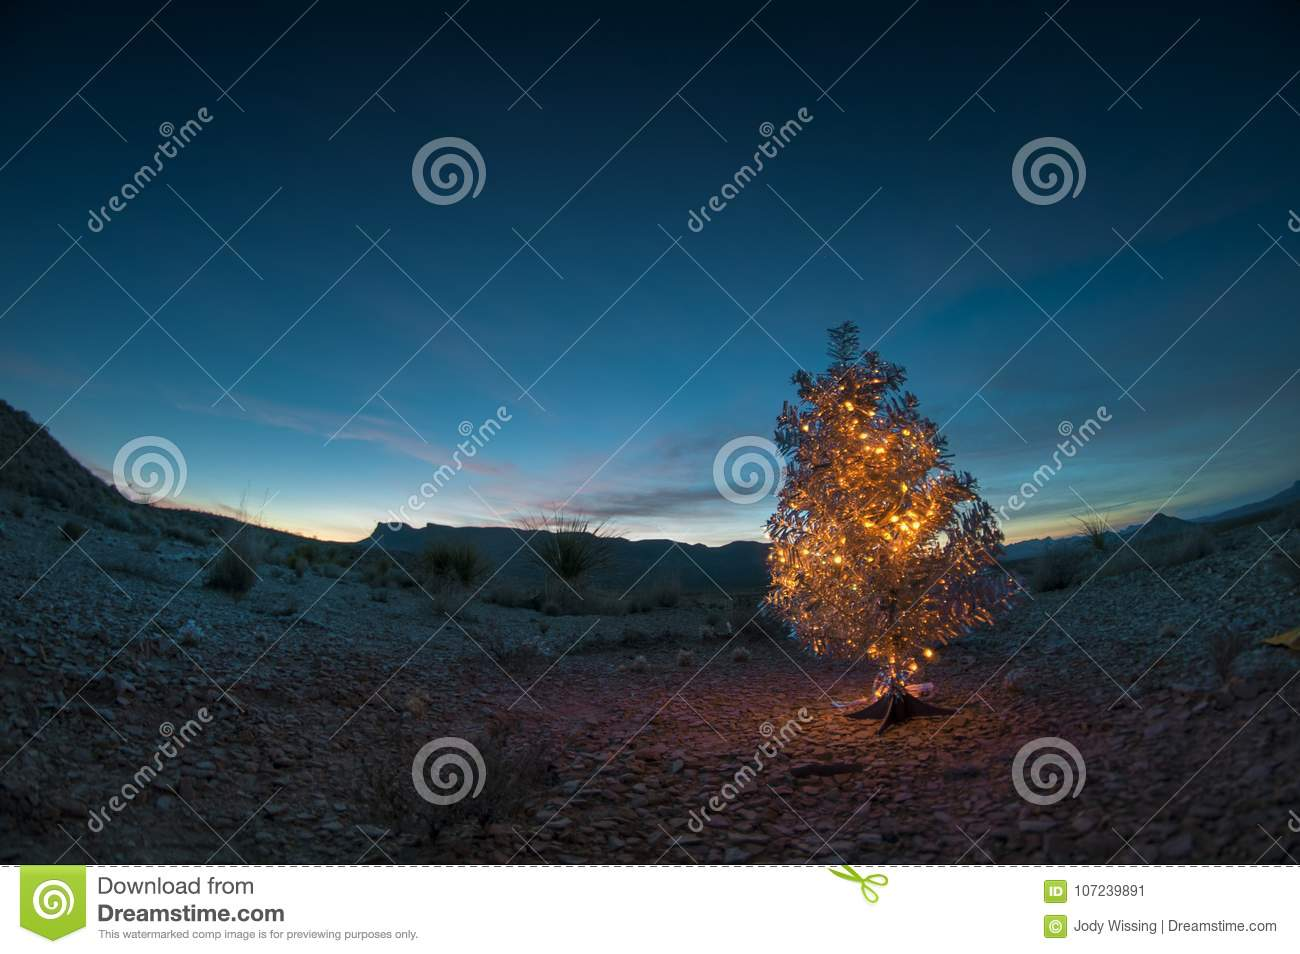 Christmas Tree In The Desert.Christmas Tree In The Desert Stock Image Image Of Sunset